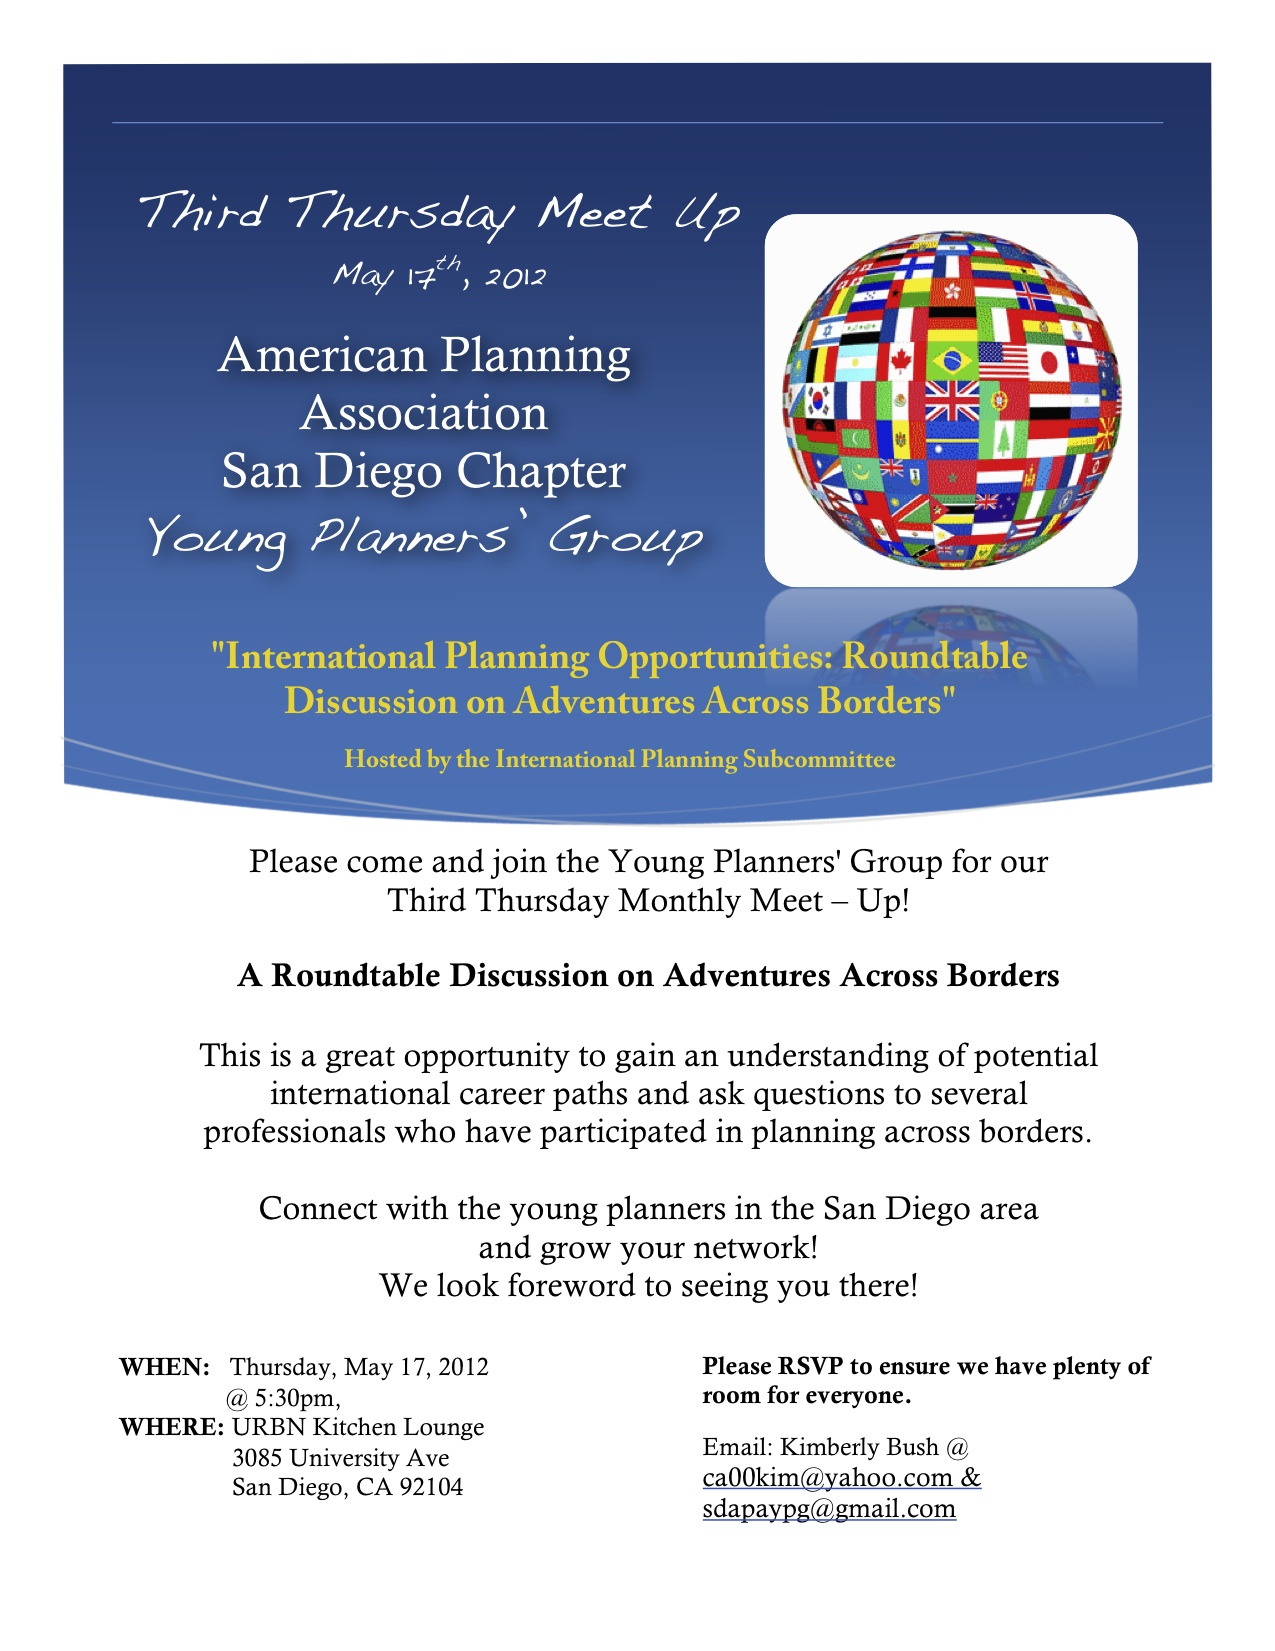 Round table discussion flyer - May2012flyer